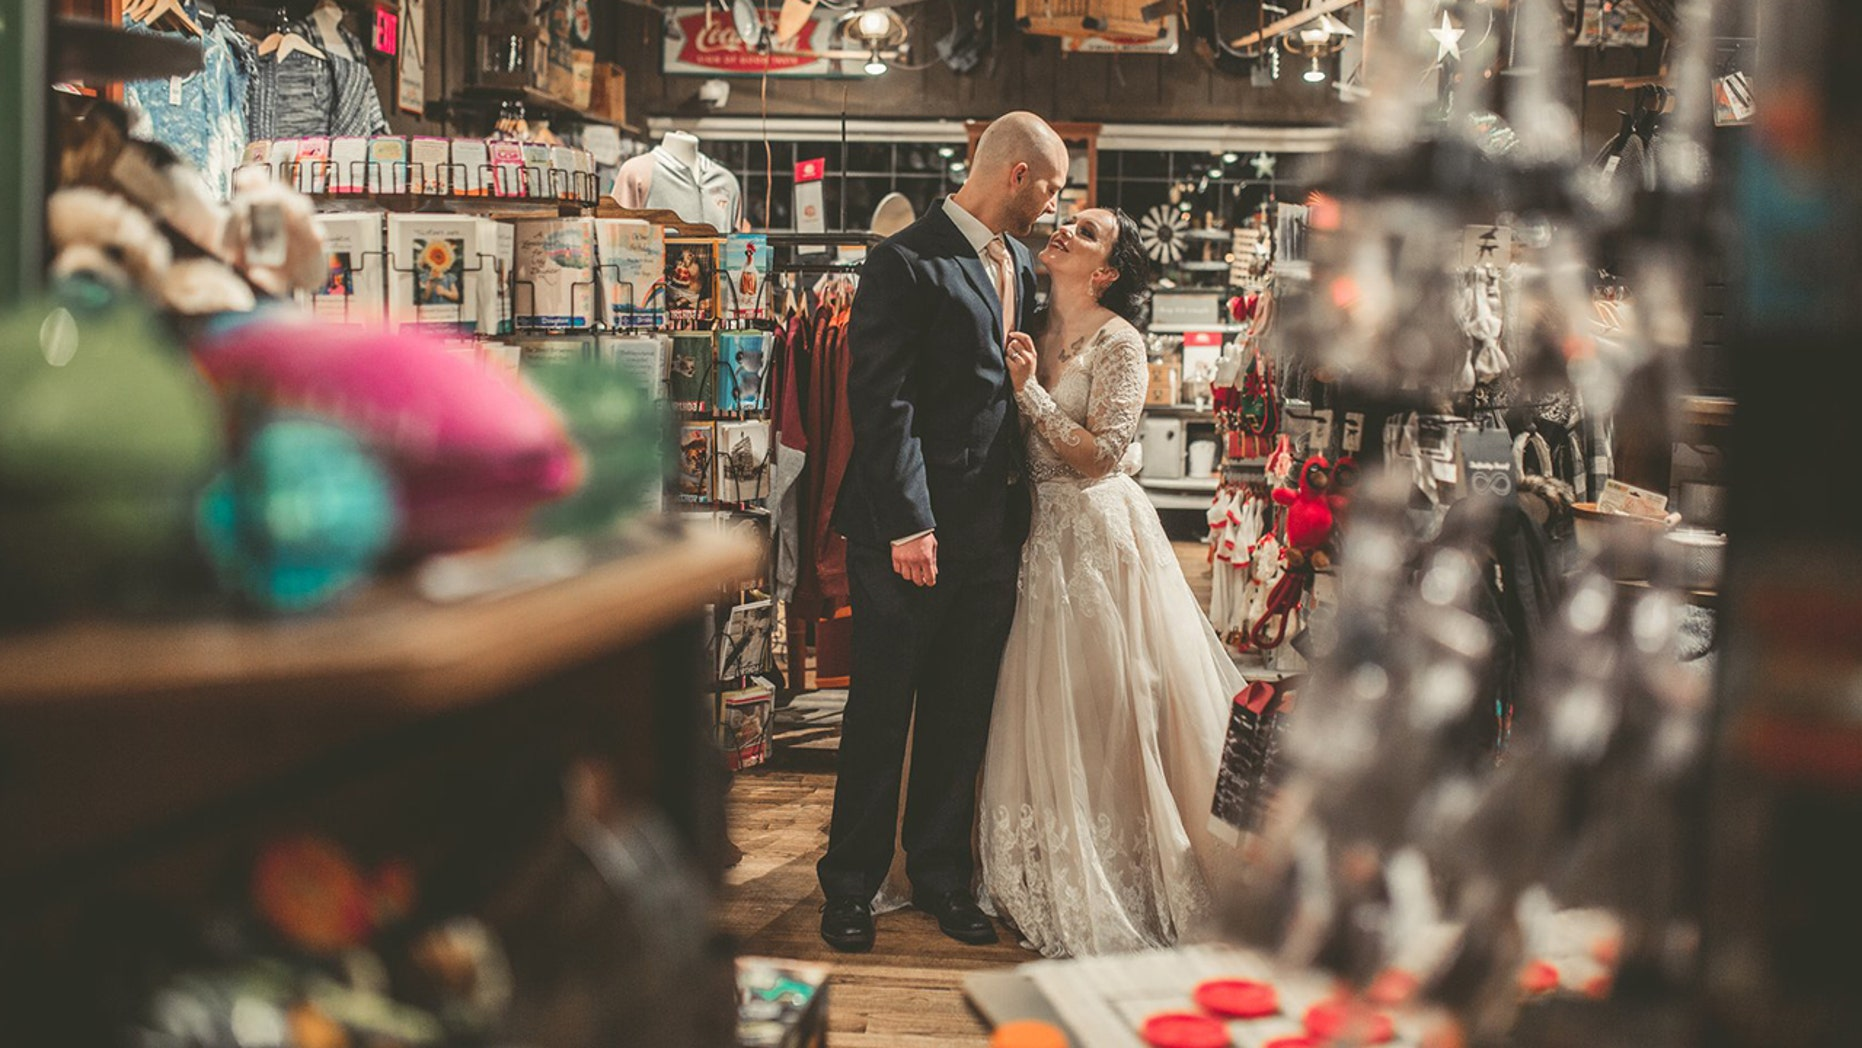 A couple who met while working at Cracker Barrel took photos on their special day at the chain.